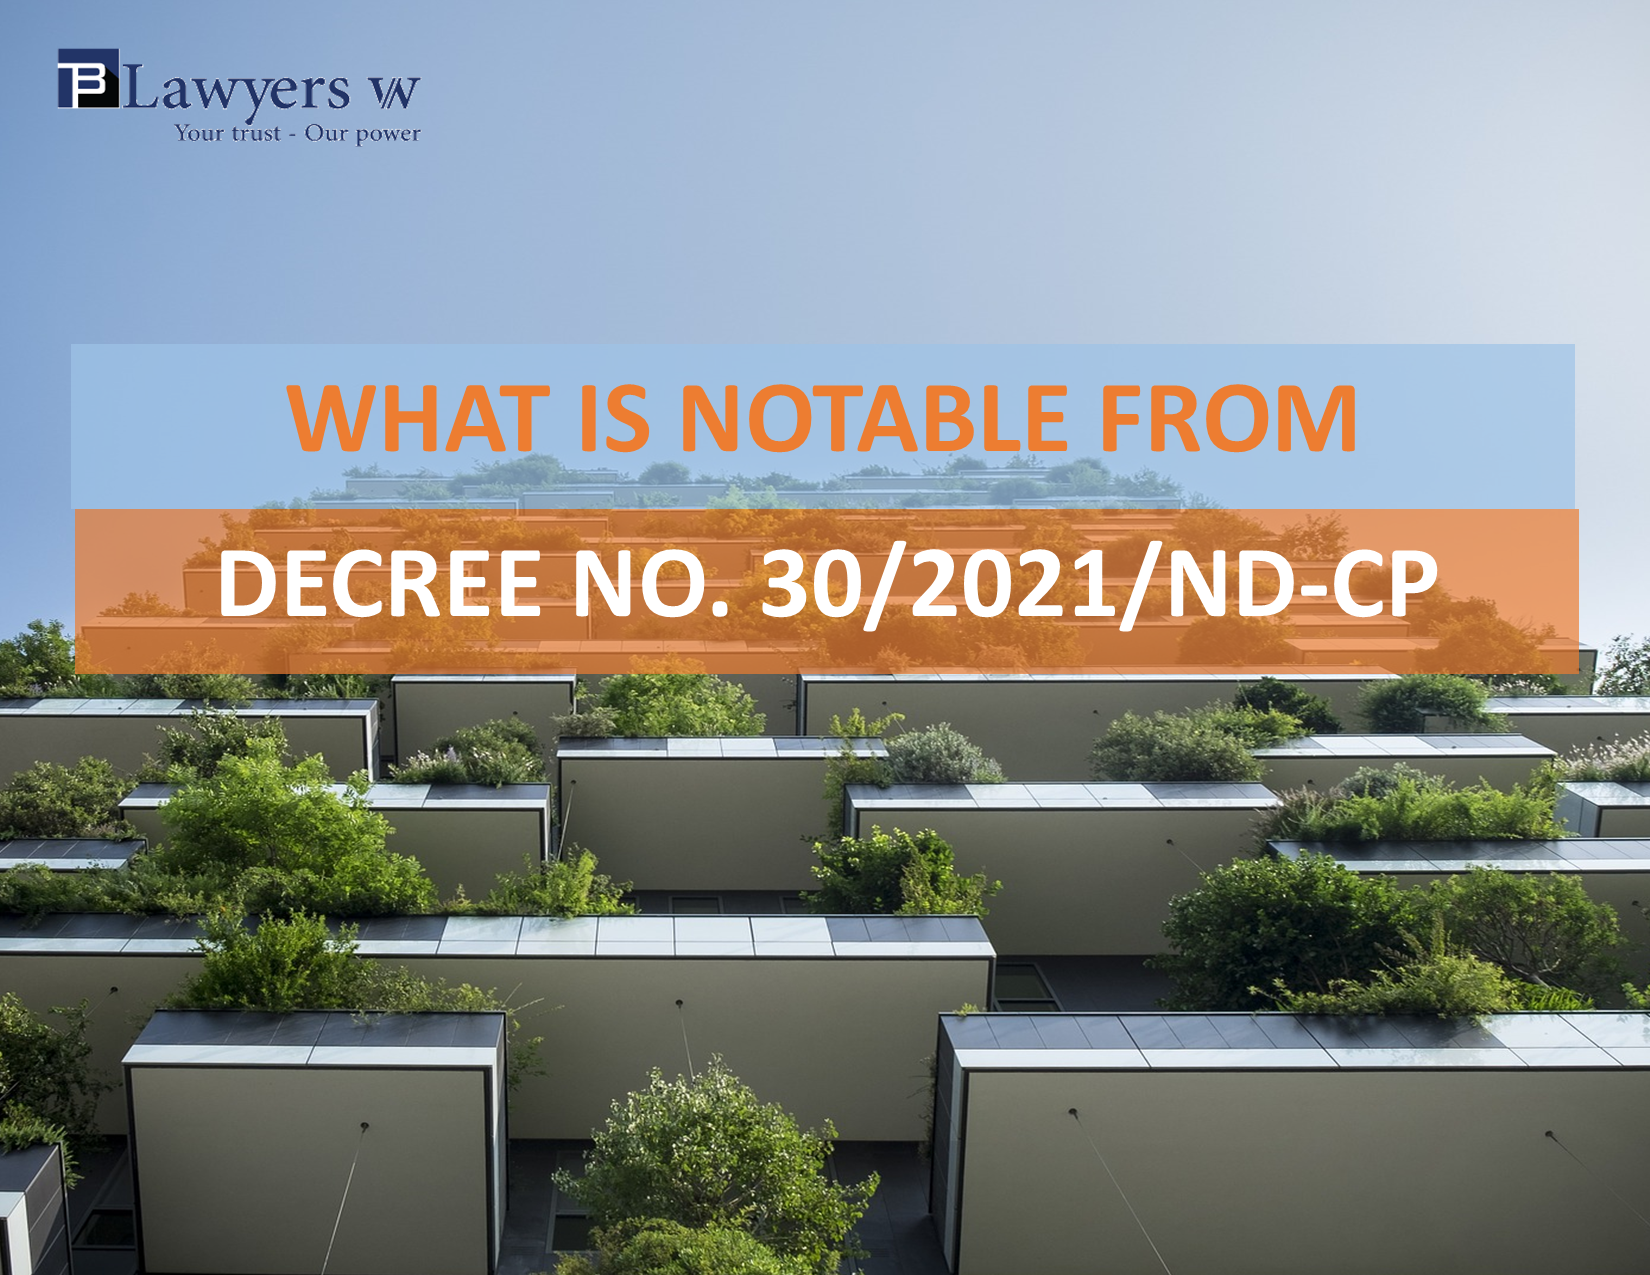 What is notable from Decree No. 30/2021/ND-CP?